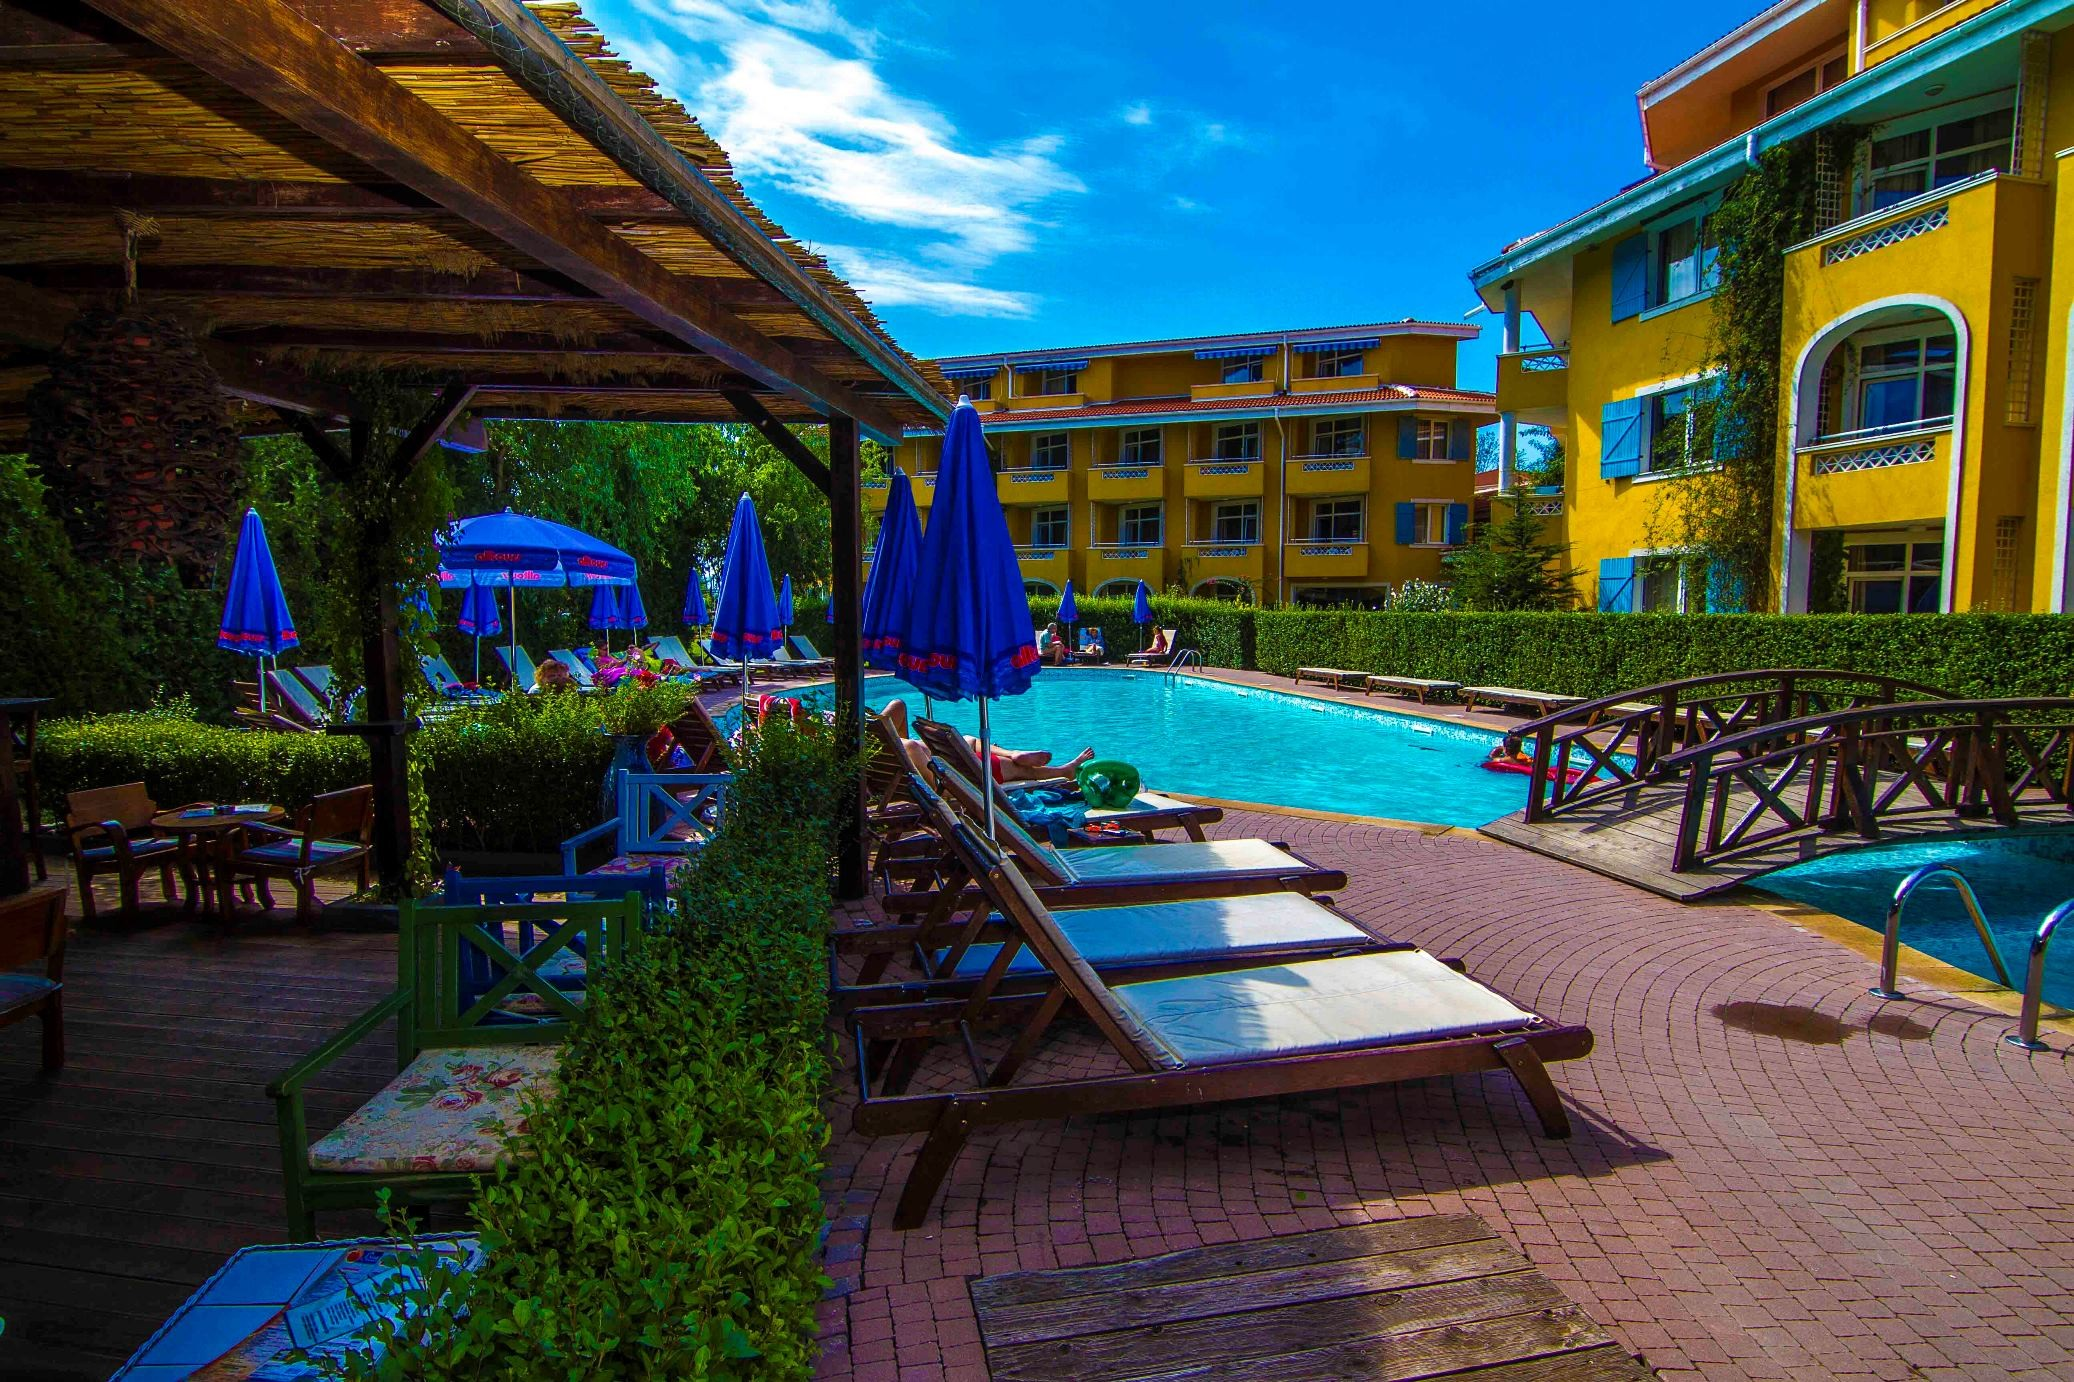 Blue Orange Beach Resort - общ изглед